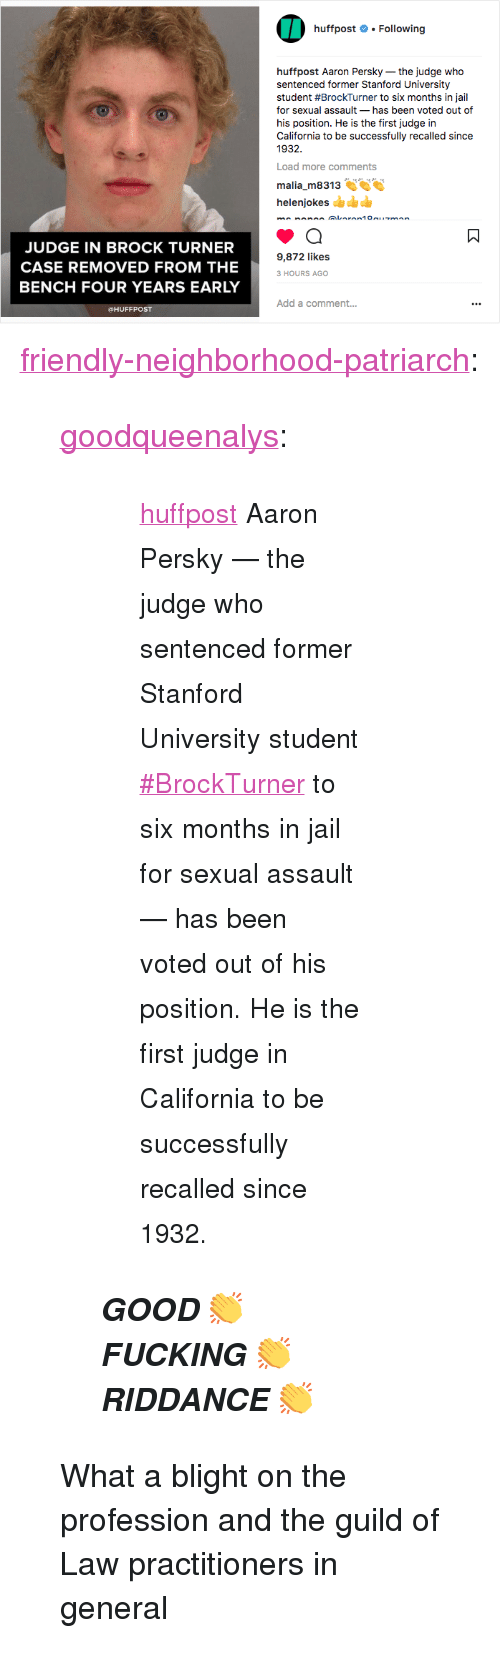 "guild: huffpost # . Following  huffpost Aaron Persky-the judge who  sentenced former Stanford University  student #BrockTurner to six months in jail  for sexual assault- has been voted out of  his position. He is the first judge in  California to be successfully recalled since  1932  Load more comments  malia m8313  helenjokes  JUDGE IN BROCK TURNER  CASE REMOVED FROM THE  BENCH FOUR YEARS EARLY  9,872 likes  3 HOURS AGO  Add a comment..  @HUFFPOST <p><a href=""http://friendly-neighborhood-patriarch.tumblr.com/post/174644617002/goodqueenalys-huffpost-aaron-persky-the-judge"" class=""tumblr_blog"">friendly-neighborhood-patriarch</a>:</p>  <blockquote><p><a href=""http://goodqueenalys.tumblr.com/post/174641374163/huffpost-aaron-persky-the-judge-who-sentenced"" class=""tumblr_blog"">goodqueenalys</a>:</p><blockquote> <blockquote><p><small><a href=""https://www.instagram.com/huffpost/"" title=""huffpost"">huffpost</a> Aaron Persky — the judge who sentenced former Stanford University student <a href=""https://www.instagram.com/explore/tags/brockturner/"">#BrockTurner</a> to six months in jail for sexual assault — has been voted out of his position. He is the first judge in California to be successfully recalled since 1932.</small></p></blockquote> <p><b><i>GOOD 👏  FUCKING 👏  RIDDANCE 👏</i></b></p> </blockquote>  <p>What a blight on the profession and the guild of Law practitioners in general</p></blockquote>"